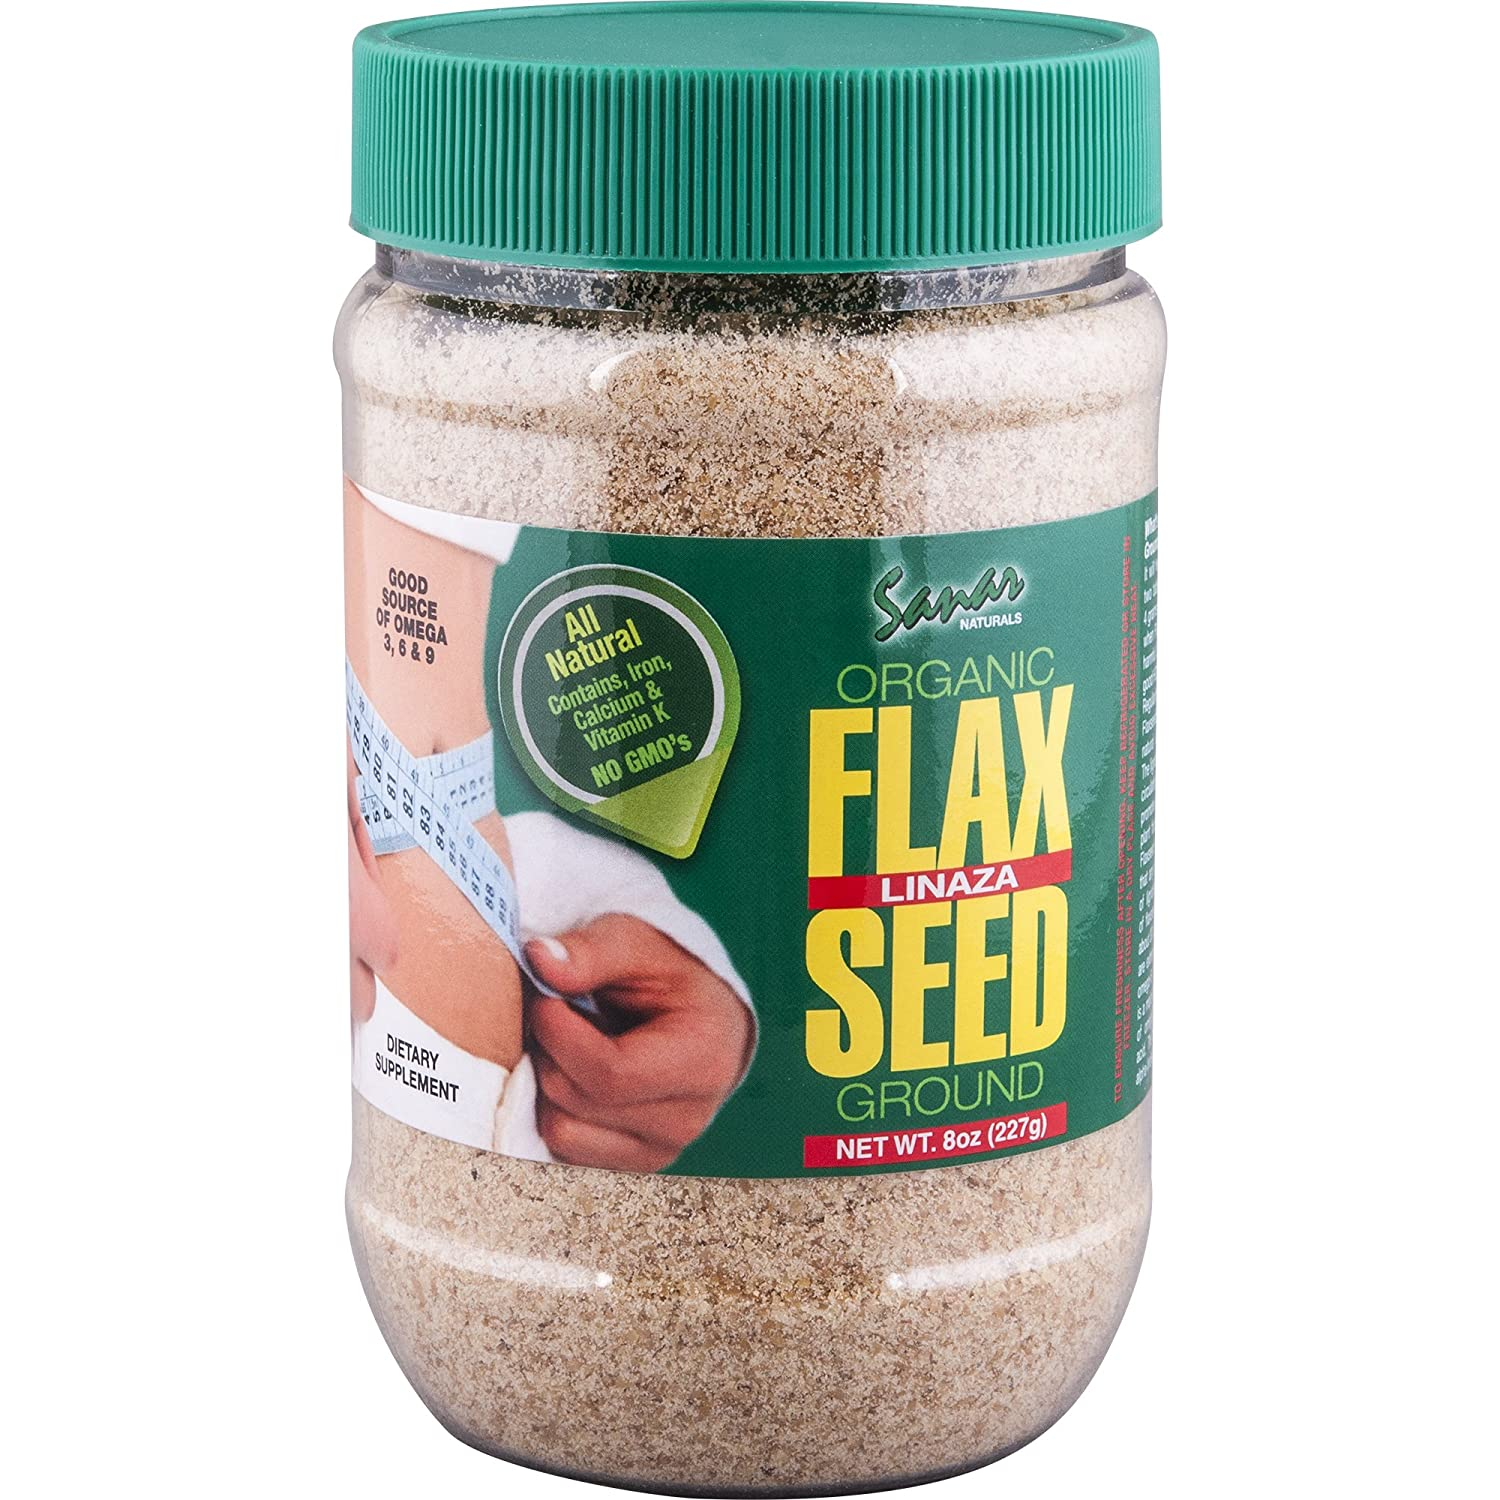 Amazon.com: Sanar Naturals Organic Ground Flaxseed, 8 Ounce (3 Pack) - Semilla de Lino Molidas, Linaza, Great Source of Omega 3,6,9, Dietary Fibers, ...